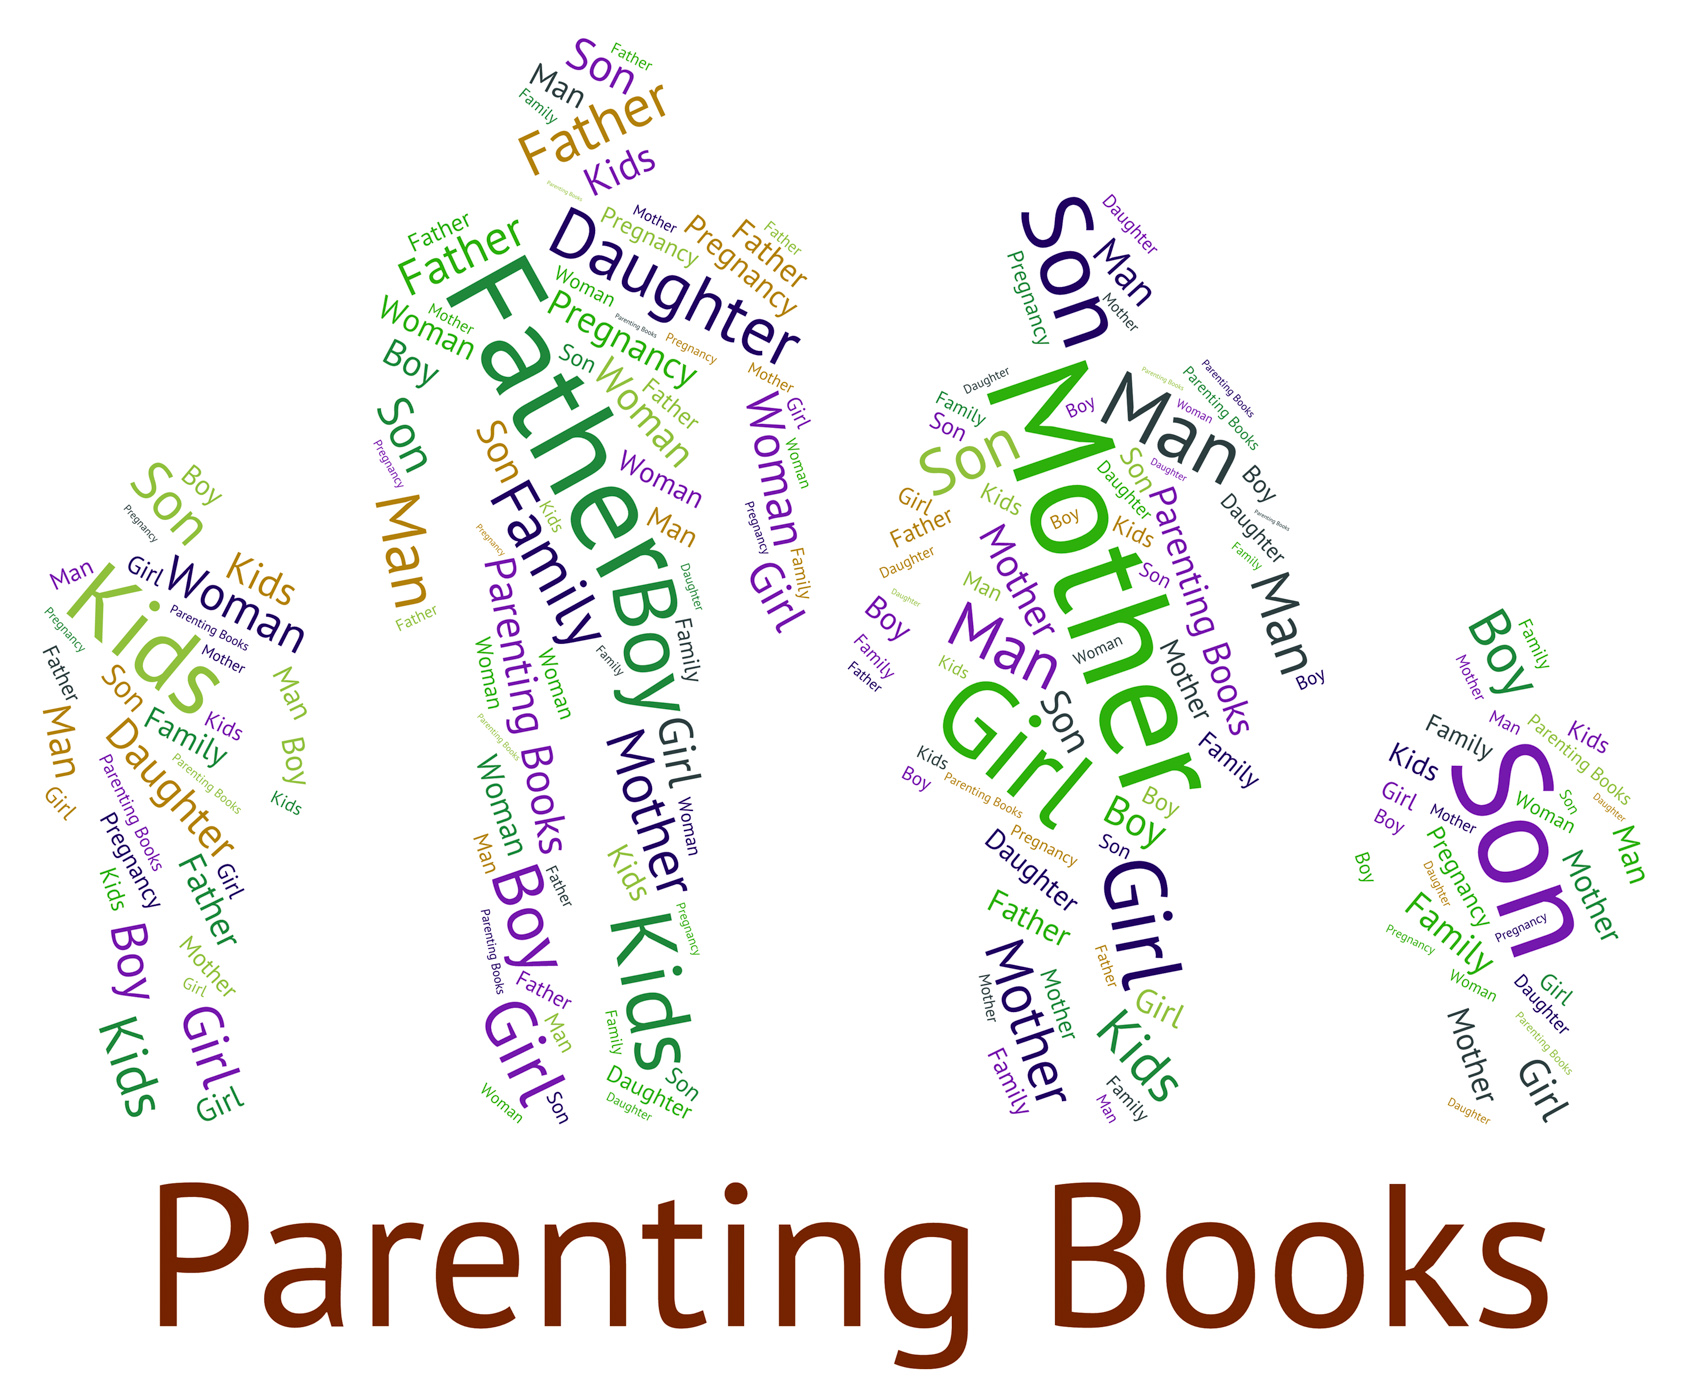 Parenting Books Means Mother And Baby And Studying, Book, Schooling, Offspring, Parent, HQ Photo